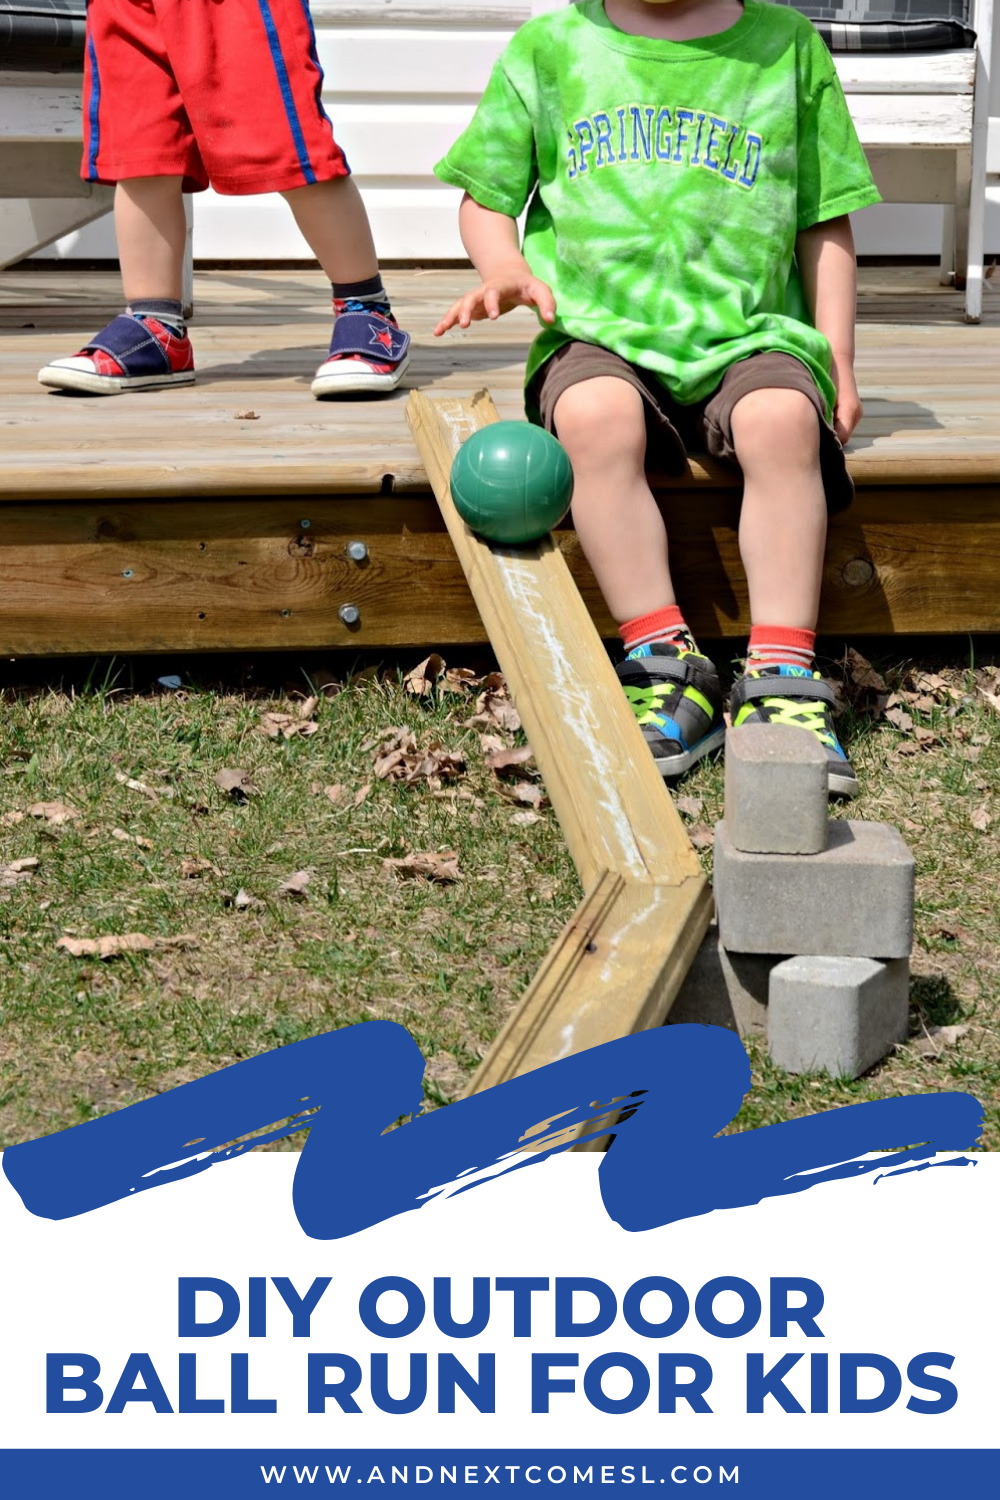 DIY outdoor ball run for kids: find out how to make a ball run with loose parts and scrap wood in the backyard